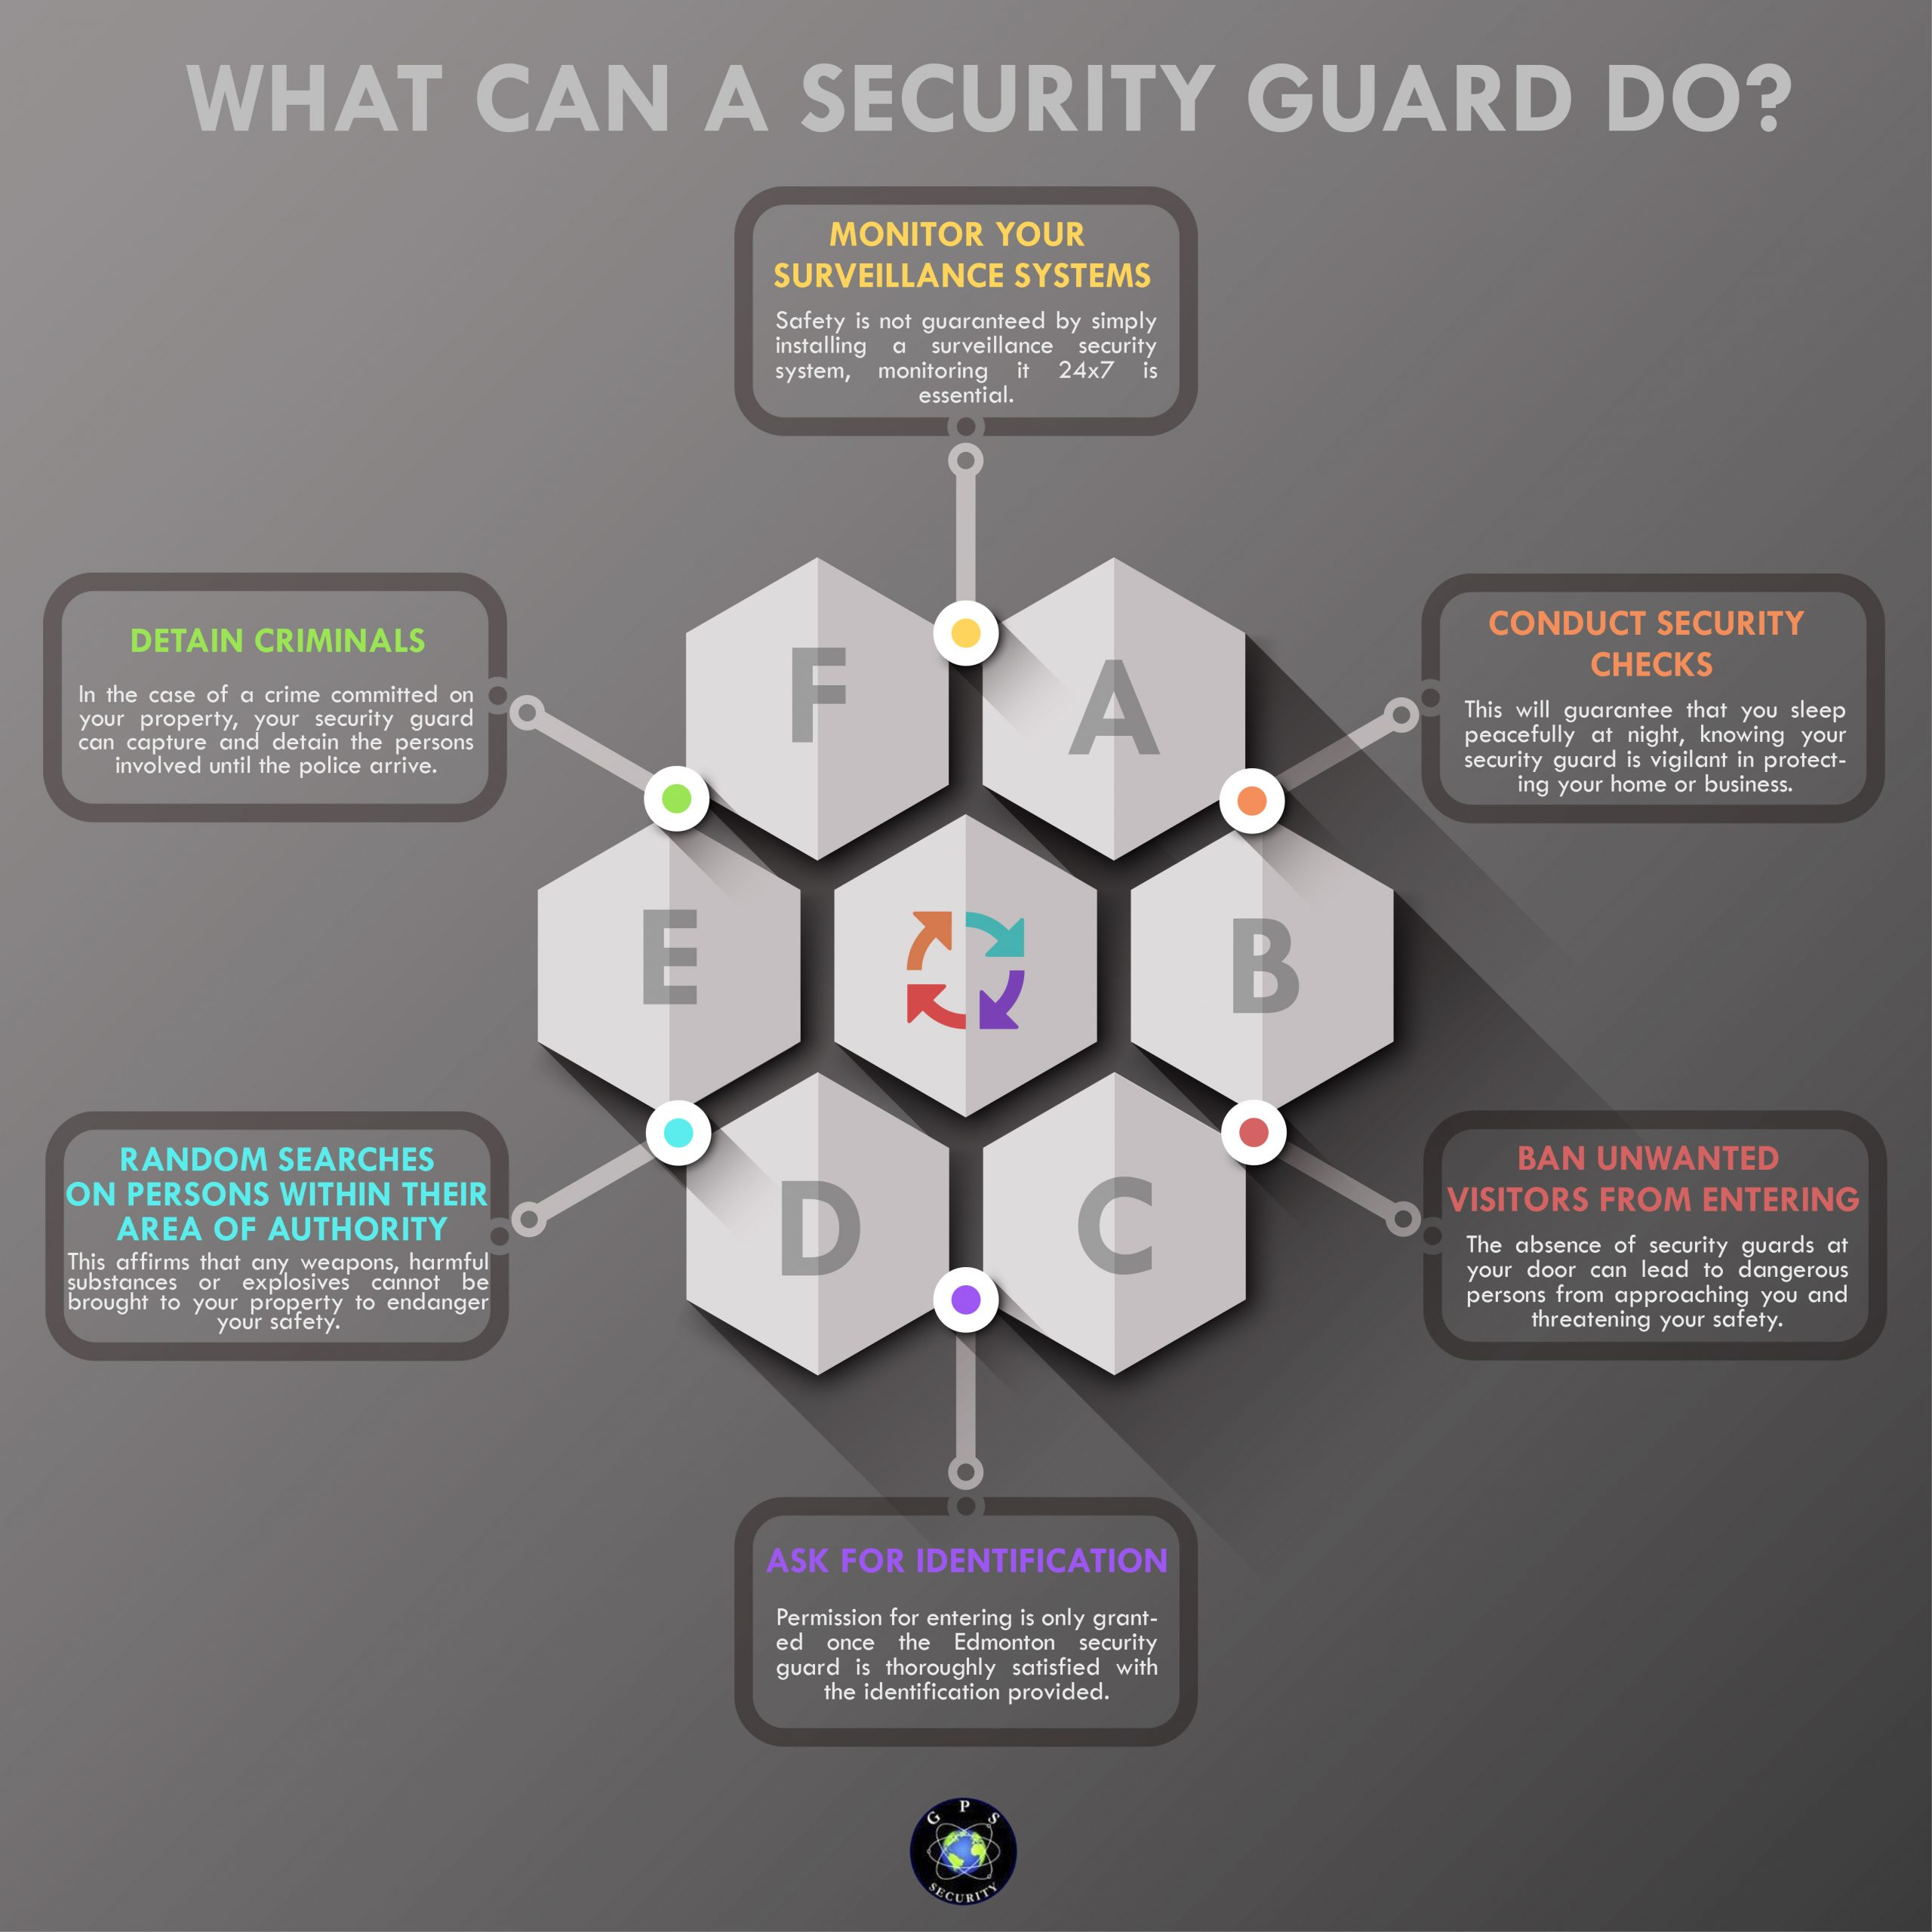 What Can a Security Guard Do?